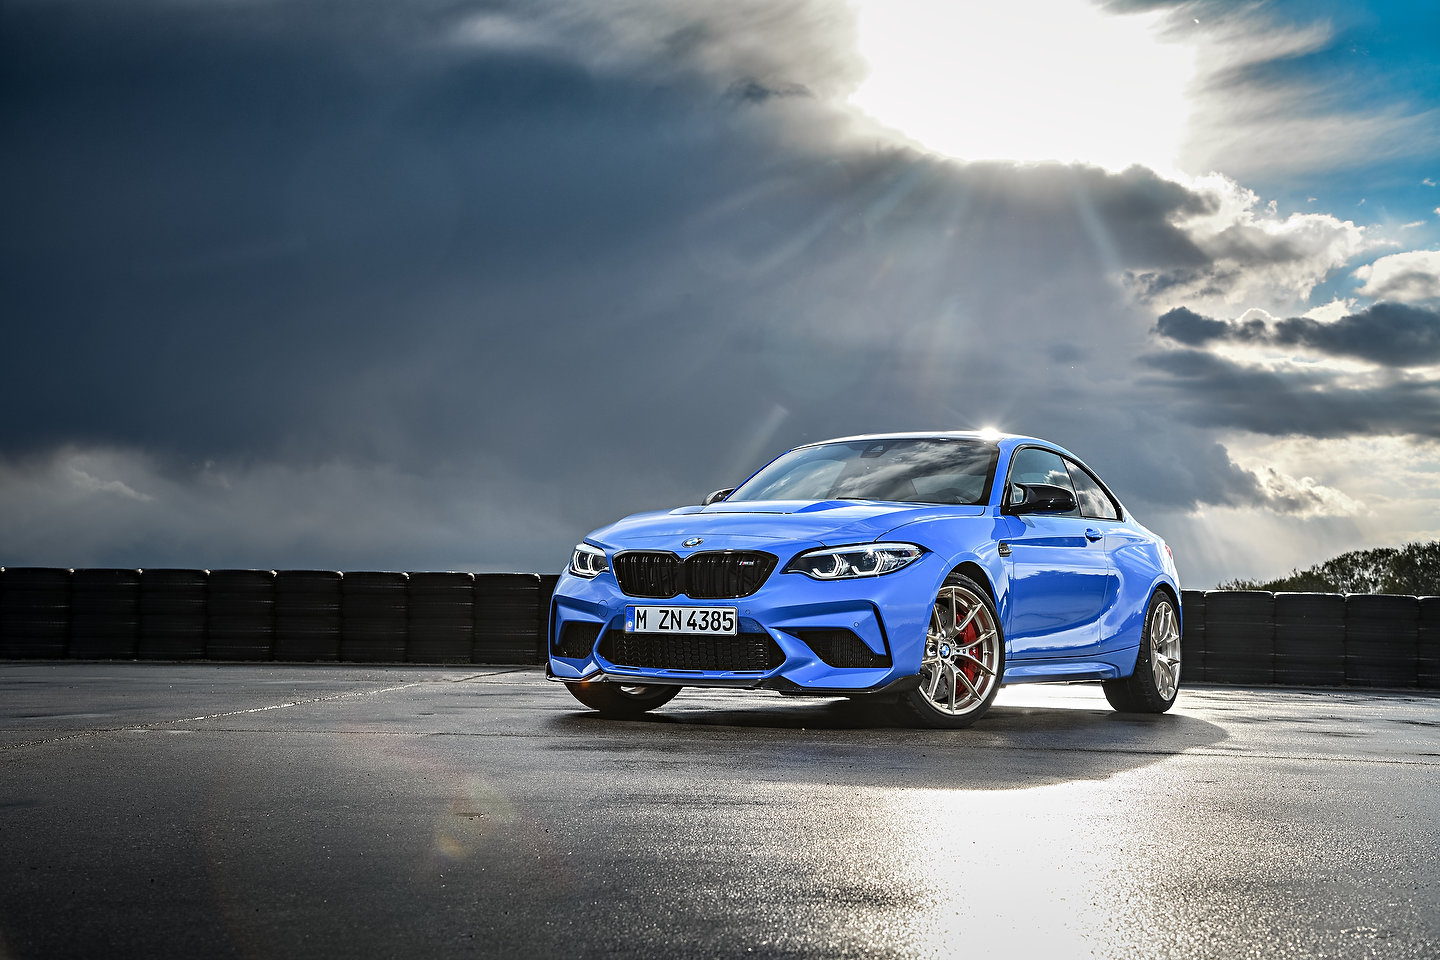 2020 BMW M2 CS Coupe